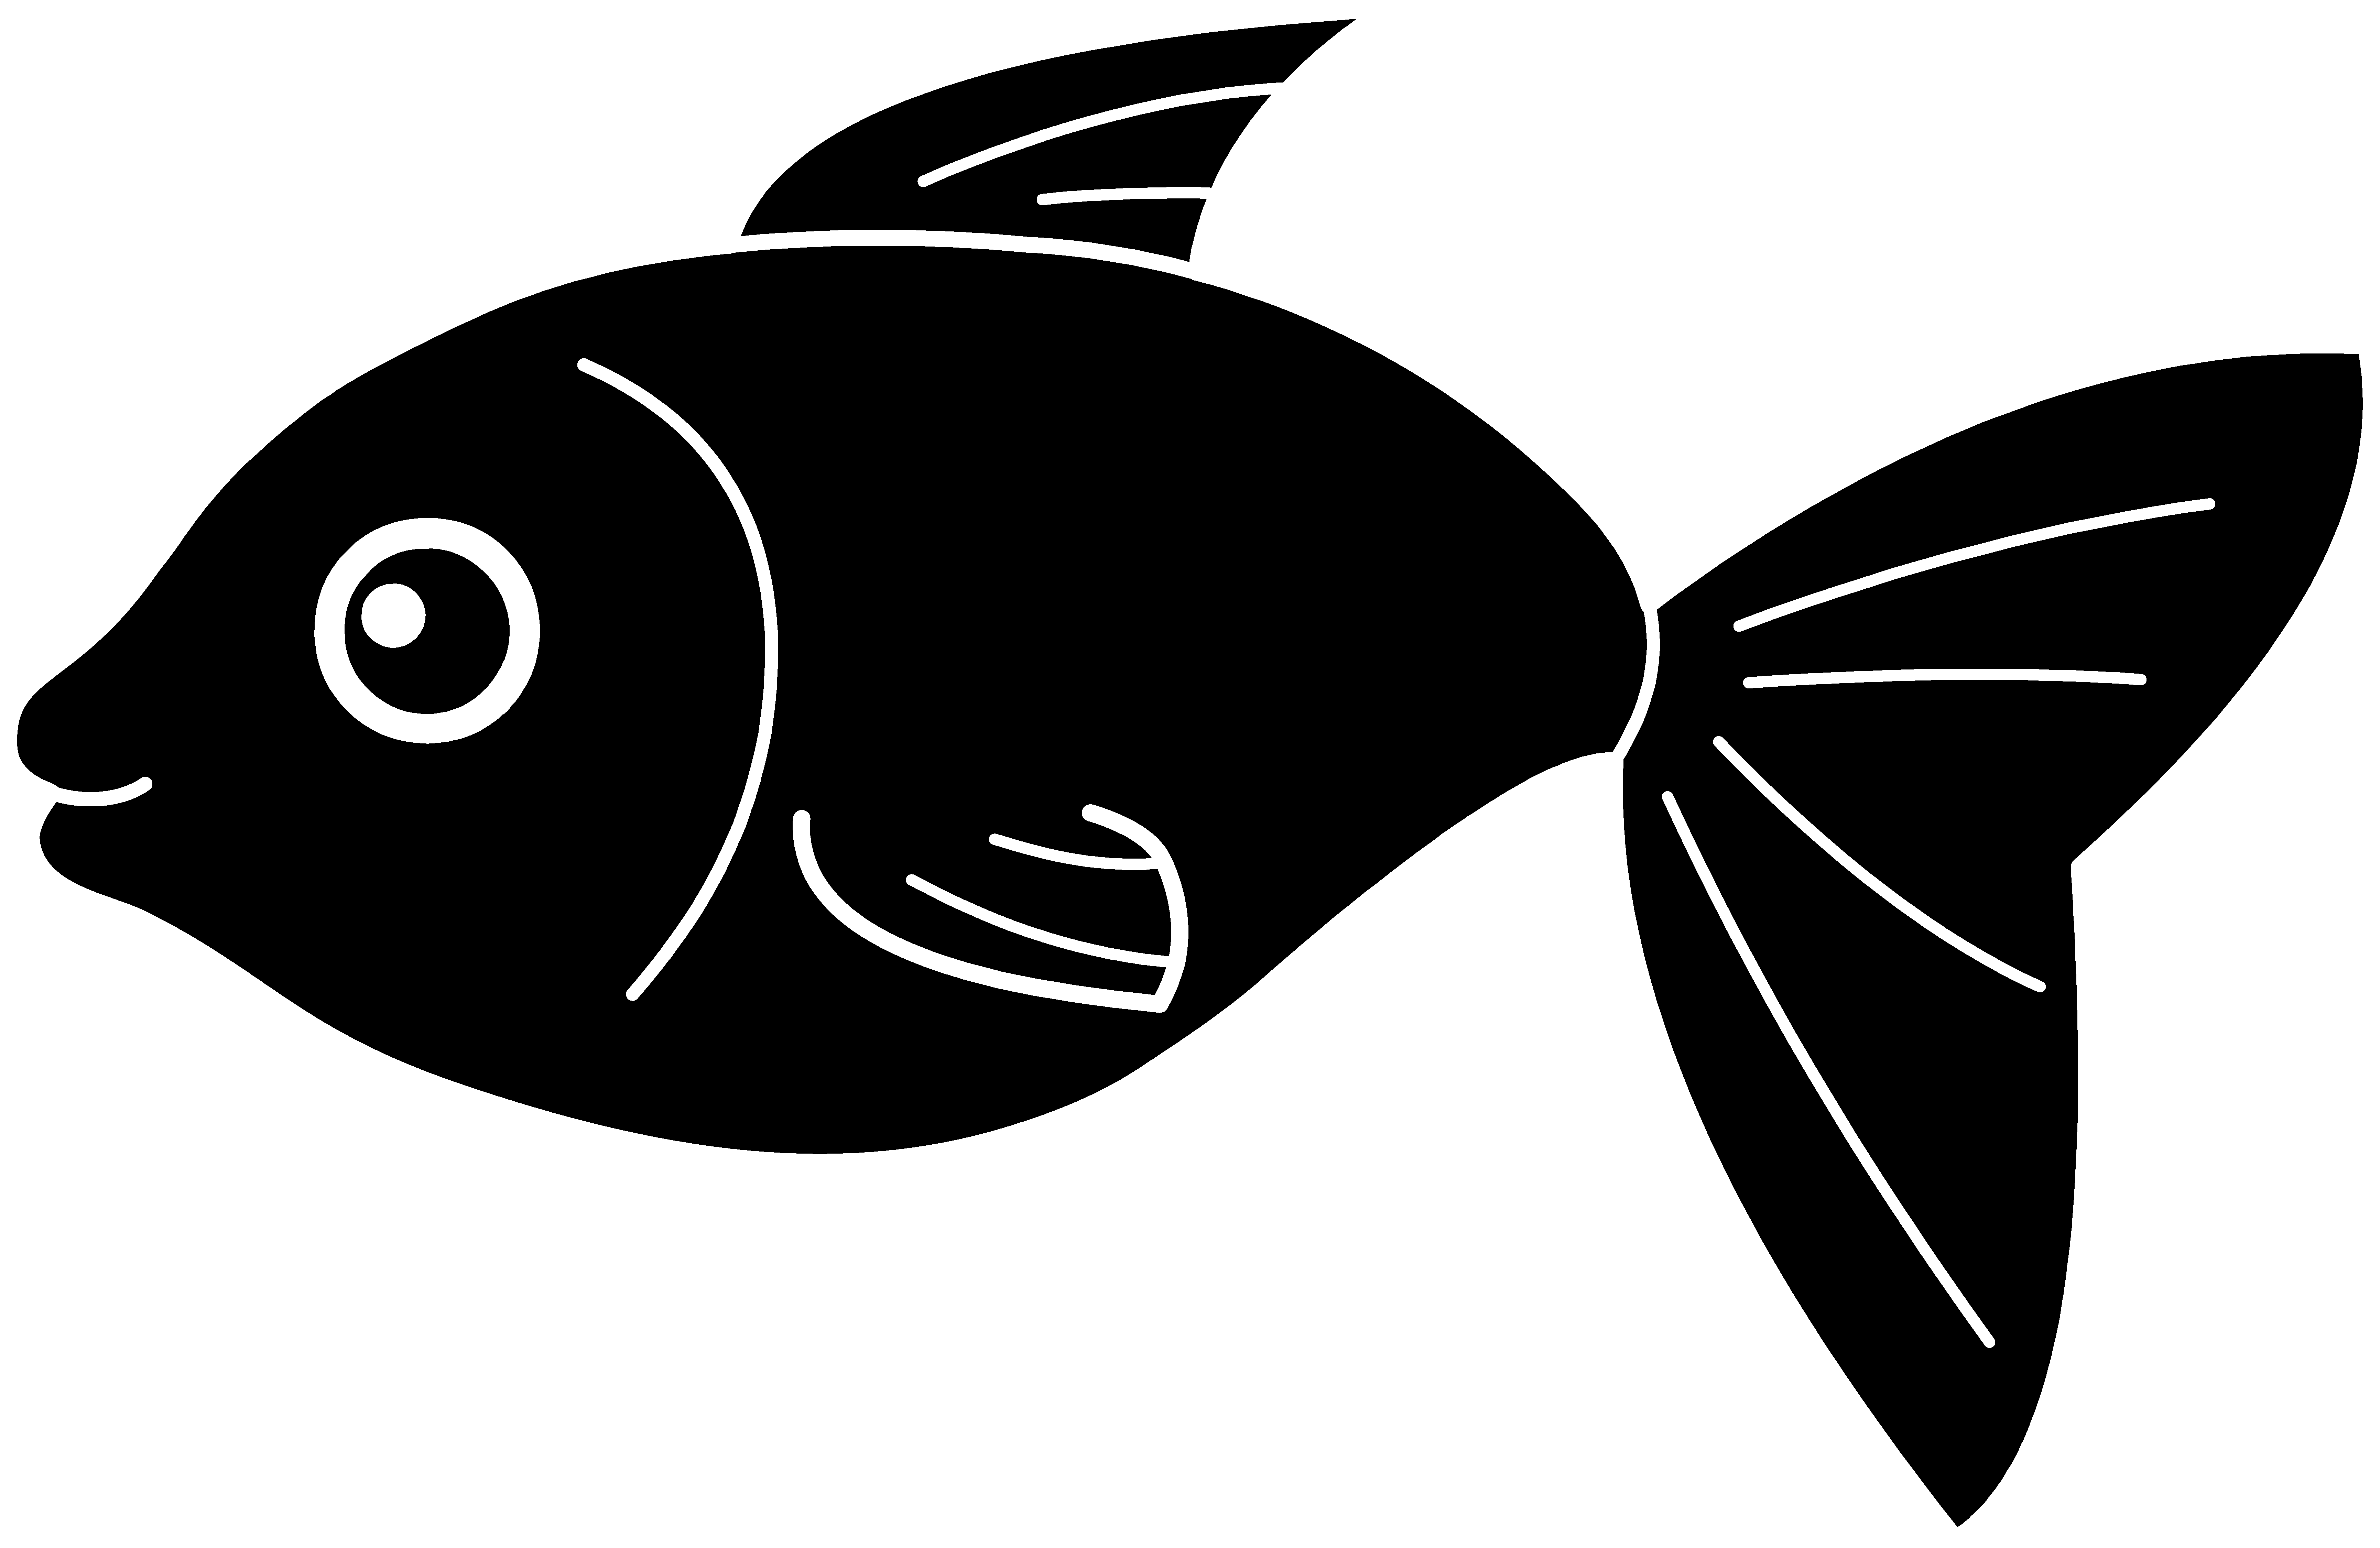 graphic library Fish silhouette free clip. Laureles vector black and white.